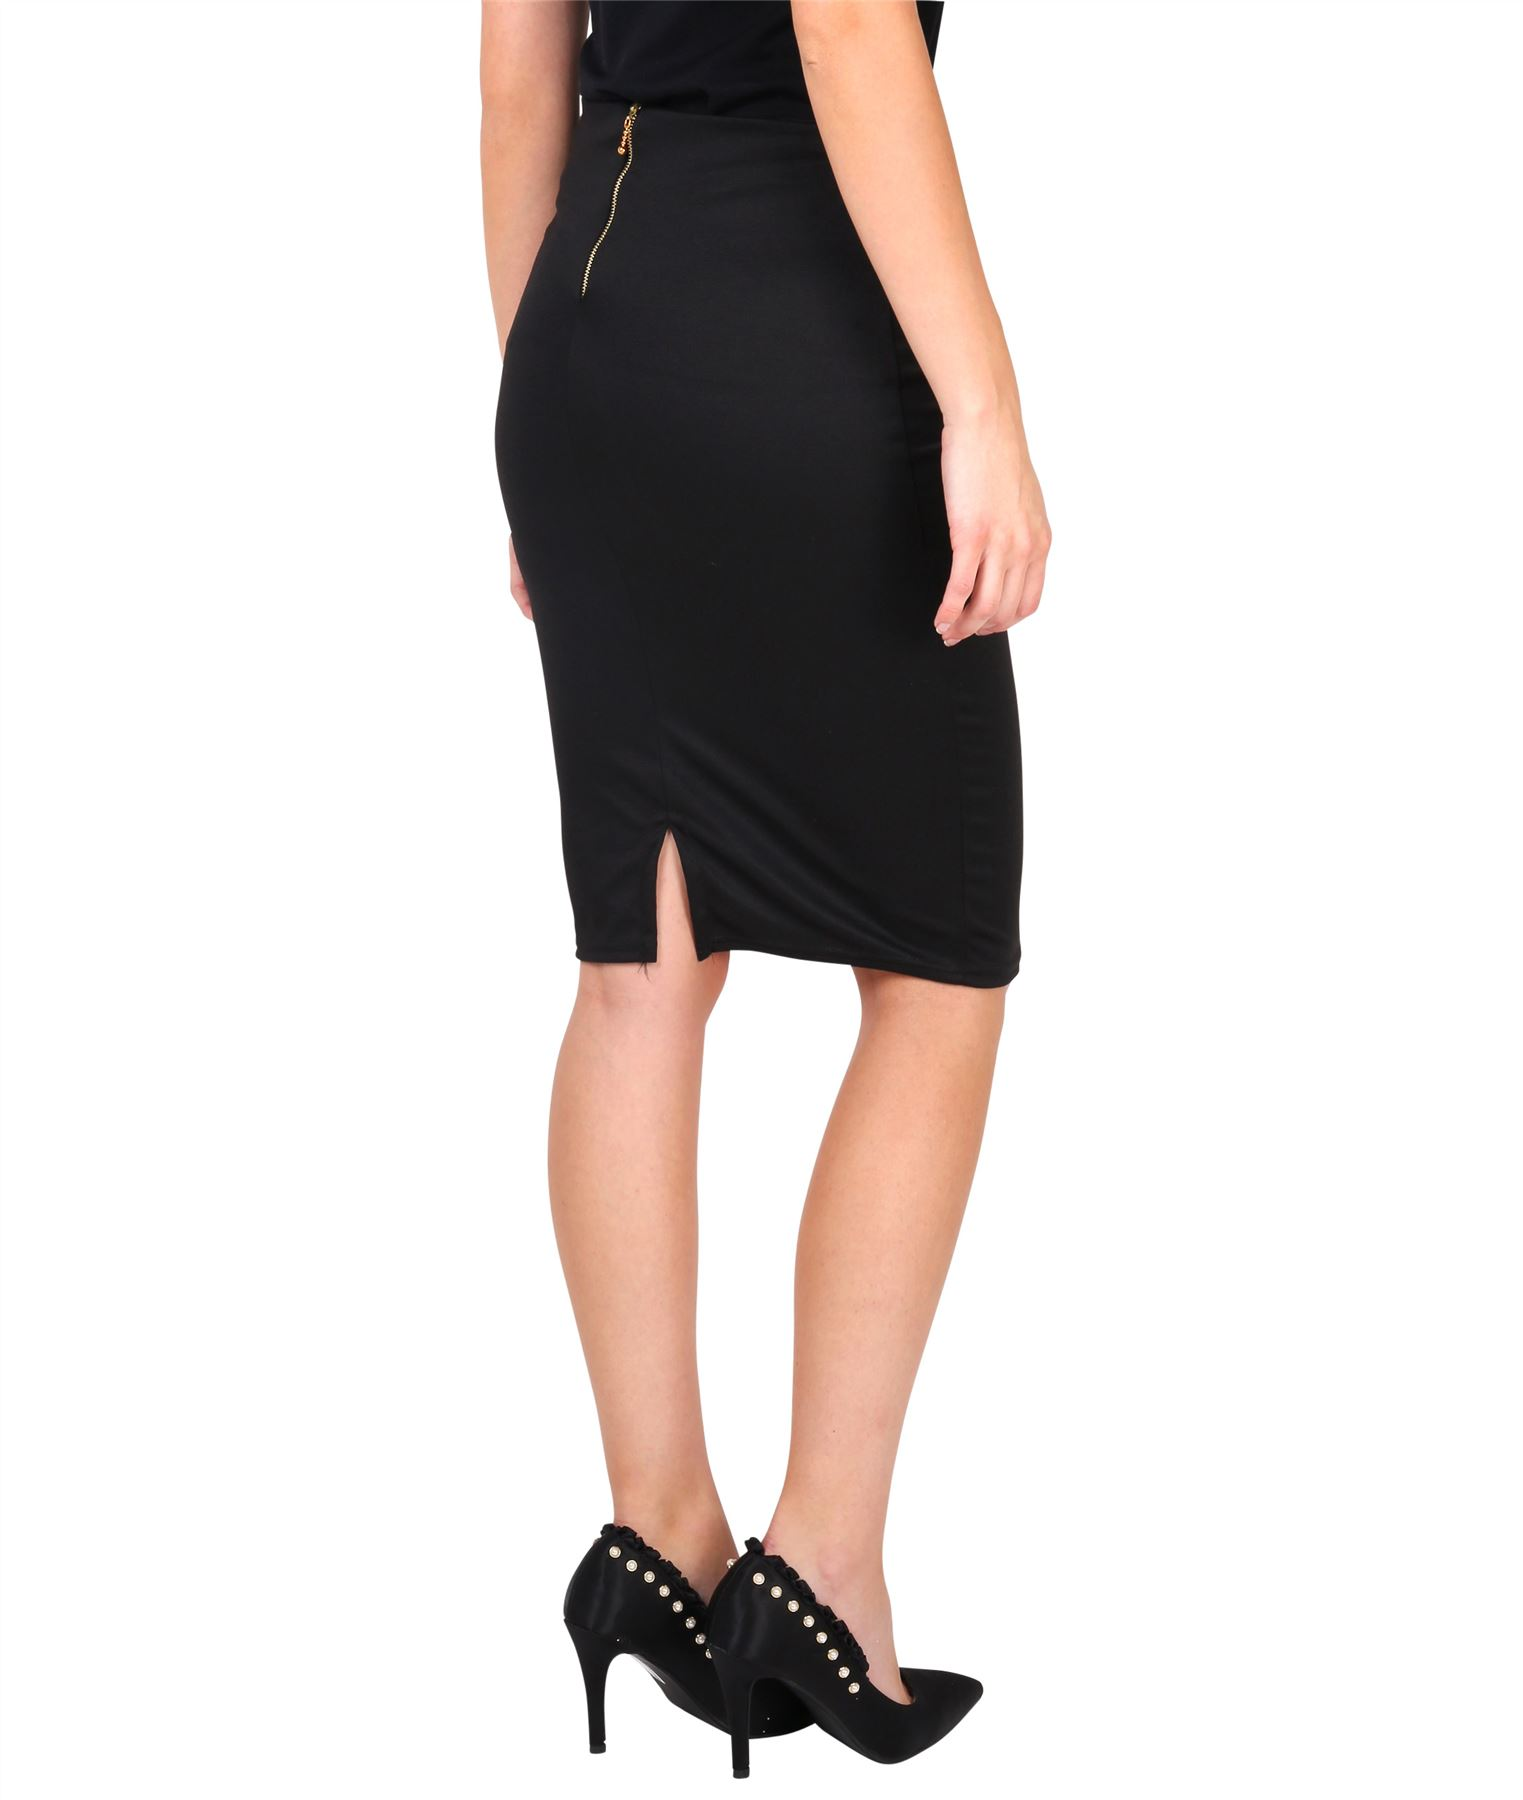 Womens-Ladies-Pencil-Skirt-Midi-Knee-Long-High-Waist-Work-Office-Business-Smart thumbnail 4